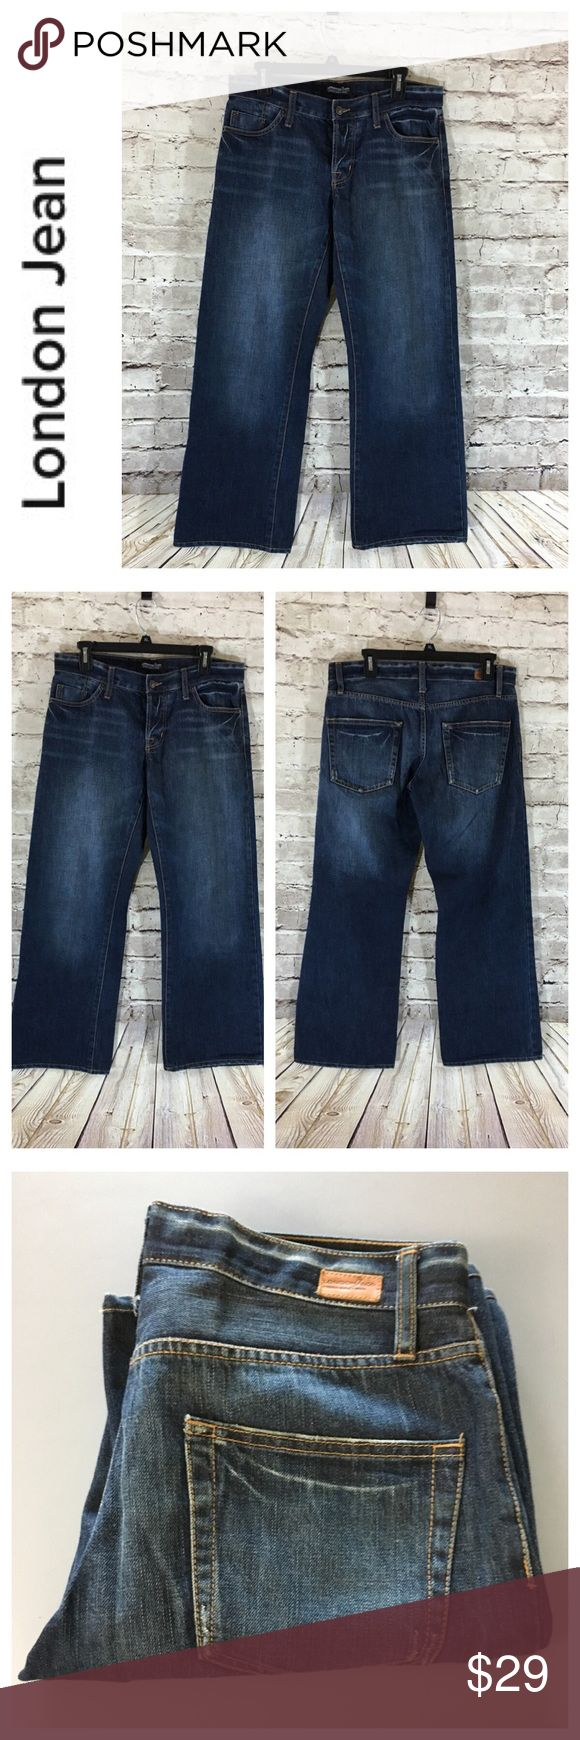 """💸London Jean wide leg denim Jean in size 6 💸London Jean wide leg denim Jean in size 6 inseam 28 1/2"""" and rise 8 1/2"""" leg width opening is 10"""" across. Measurements are approximate. Button fly closure. Jean is a cross between boyfriend and wide leg, both extremely stylish! Perfect with a white tee and sneakers! Rolled or unrolled this jean has options! London Jean Jeans Flare & Wide Leg"""